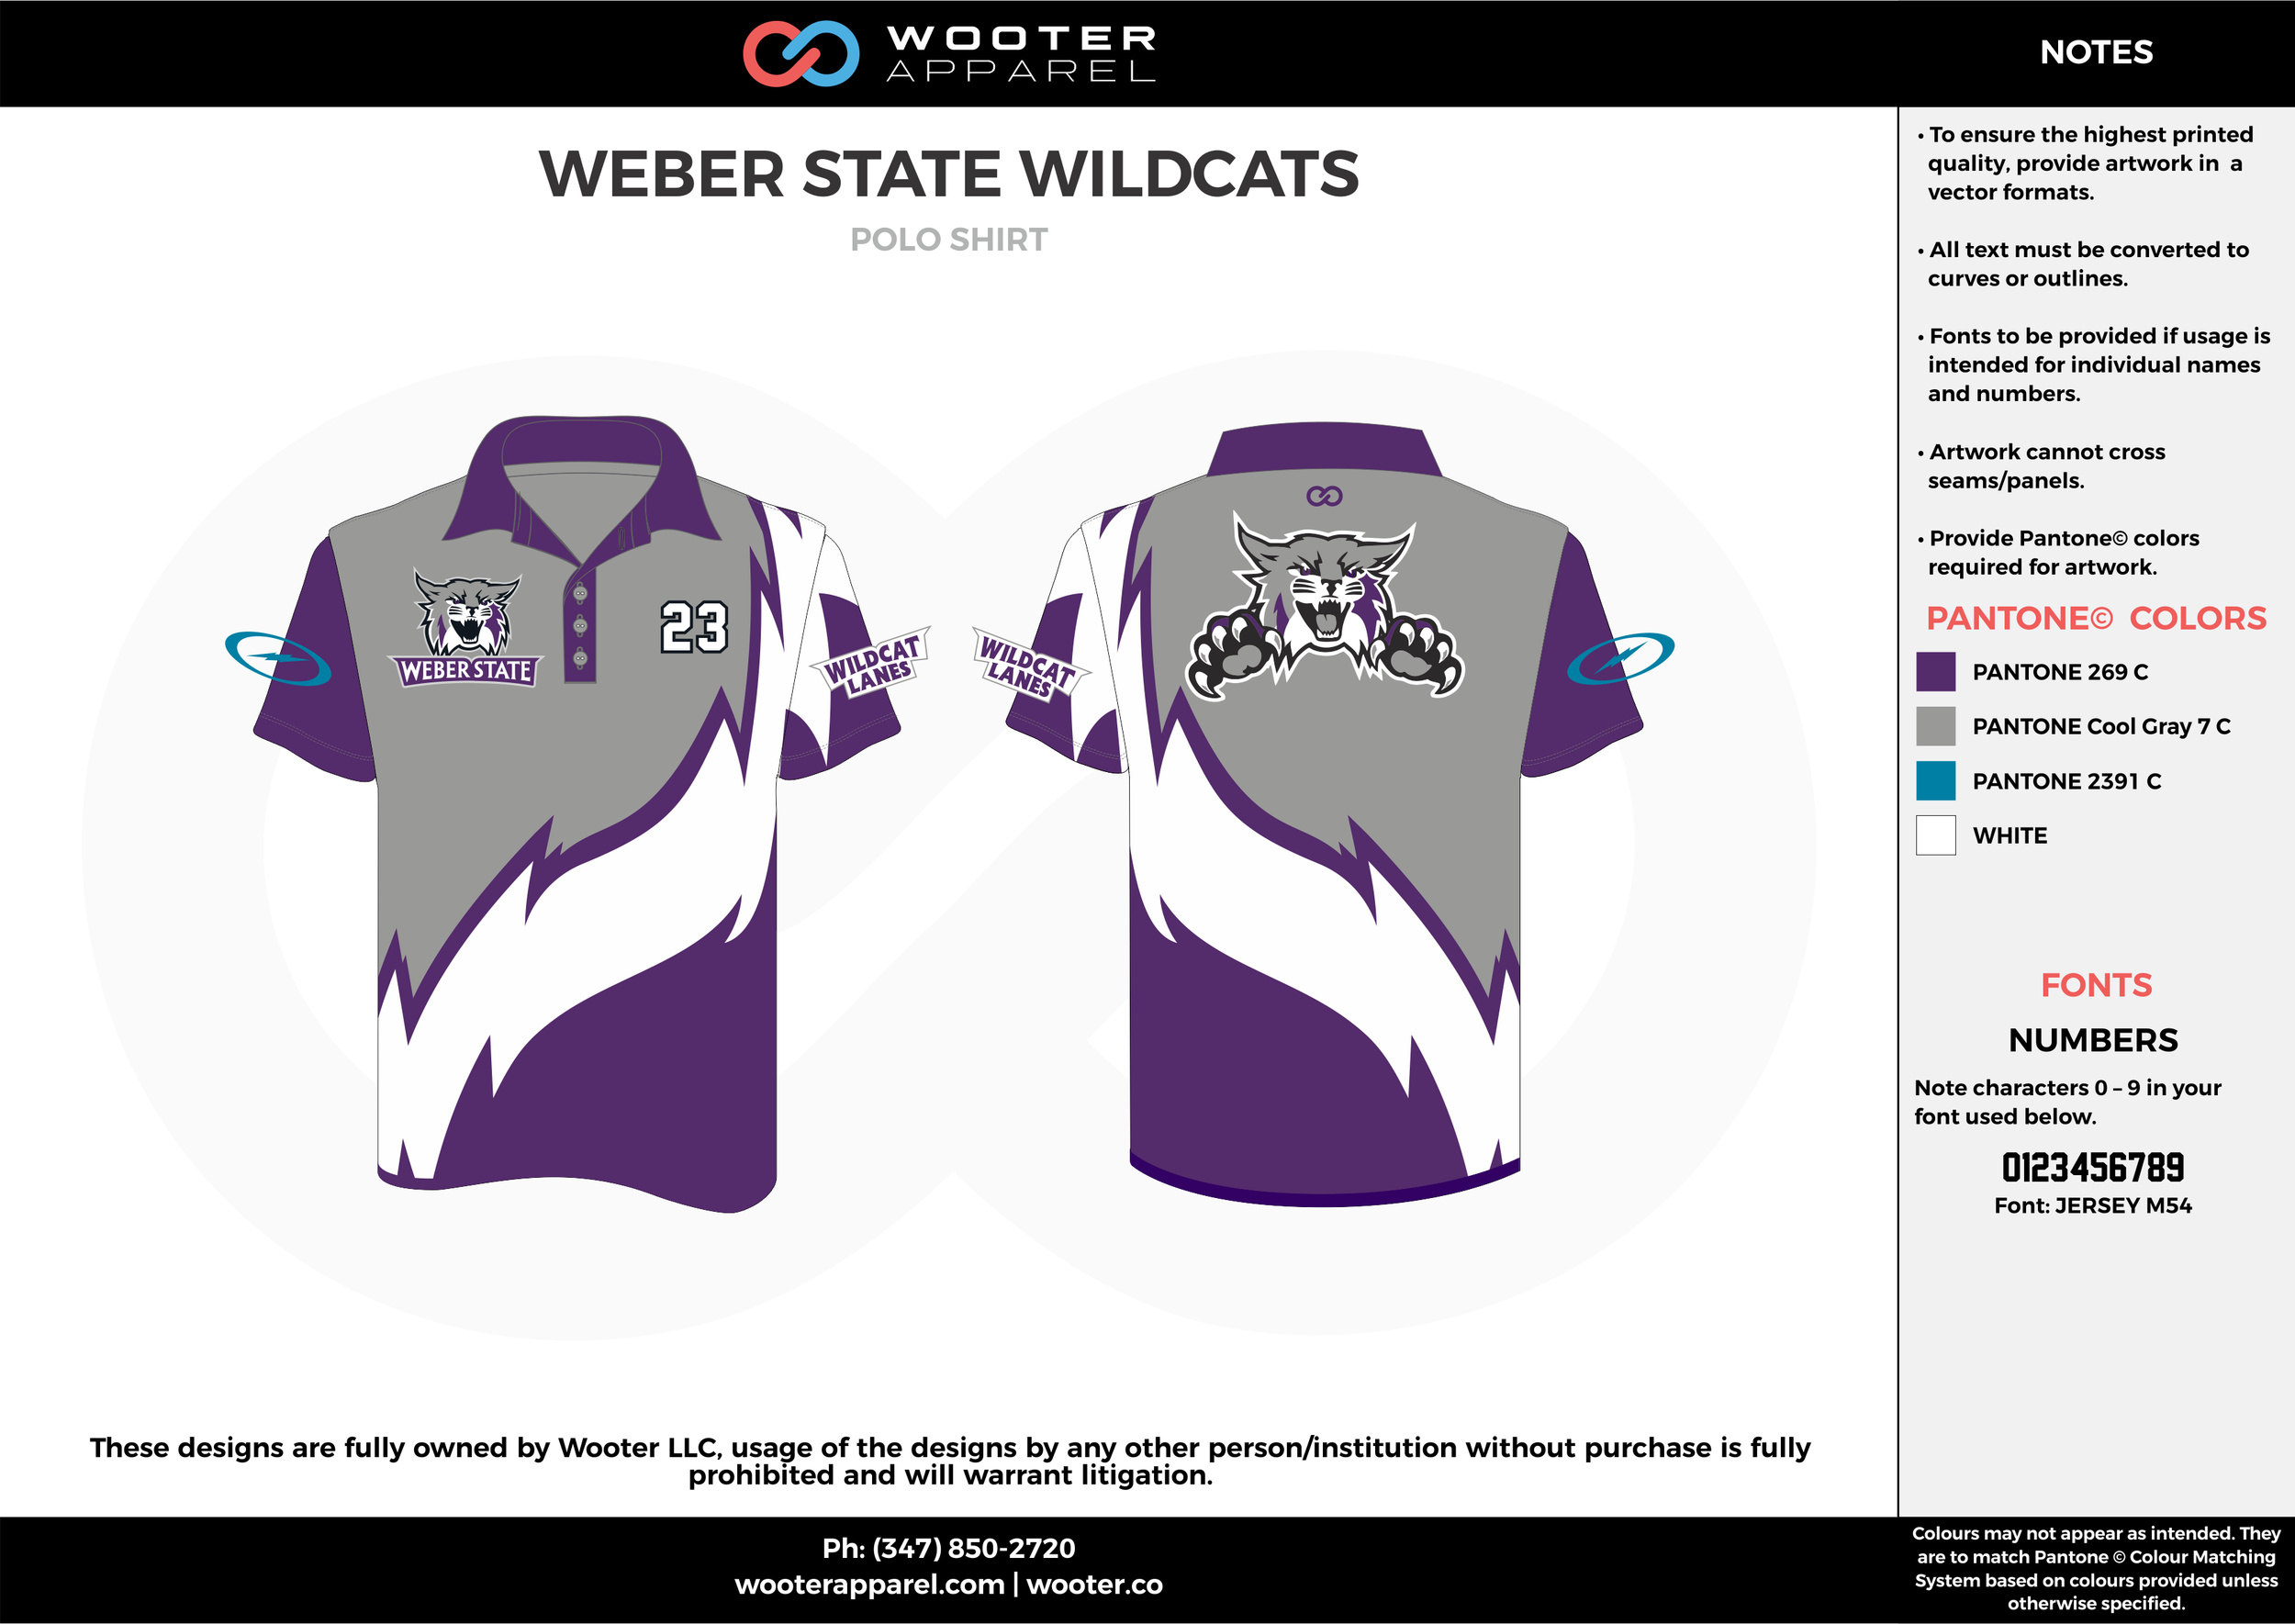 WEBER STATE WILDCATS gray violet white bowling uniforms, shirts, quarter zip polo